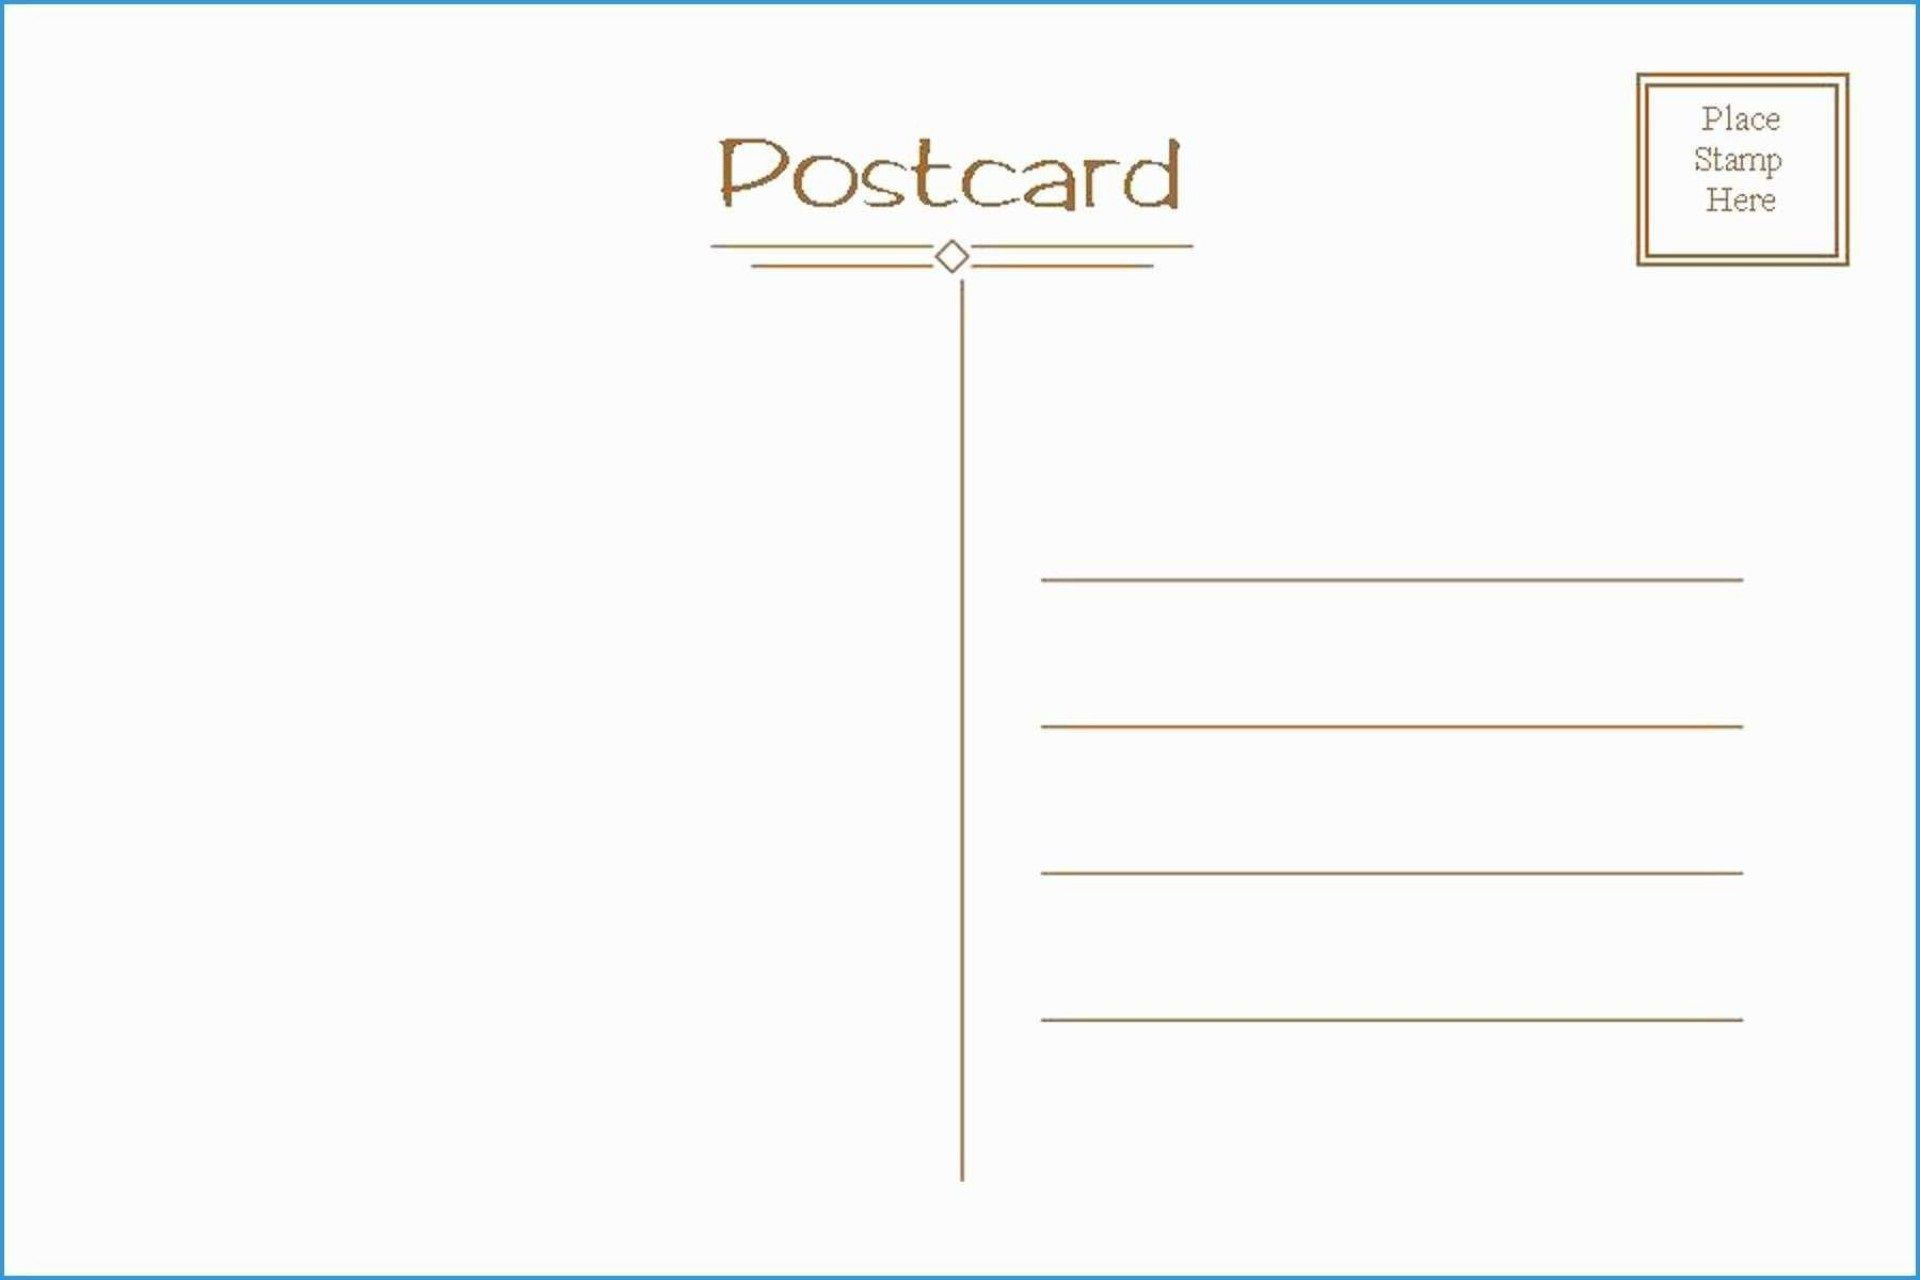 005 Wondrou Postcard Template Download Microsoft Word High Definition Full